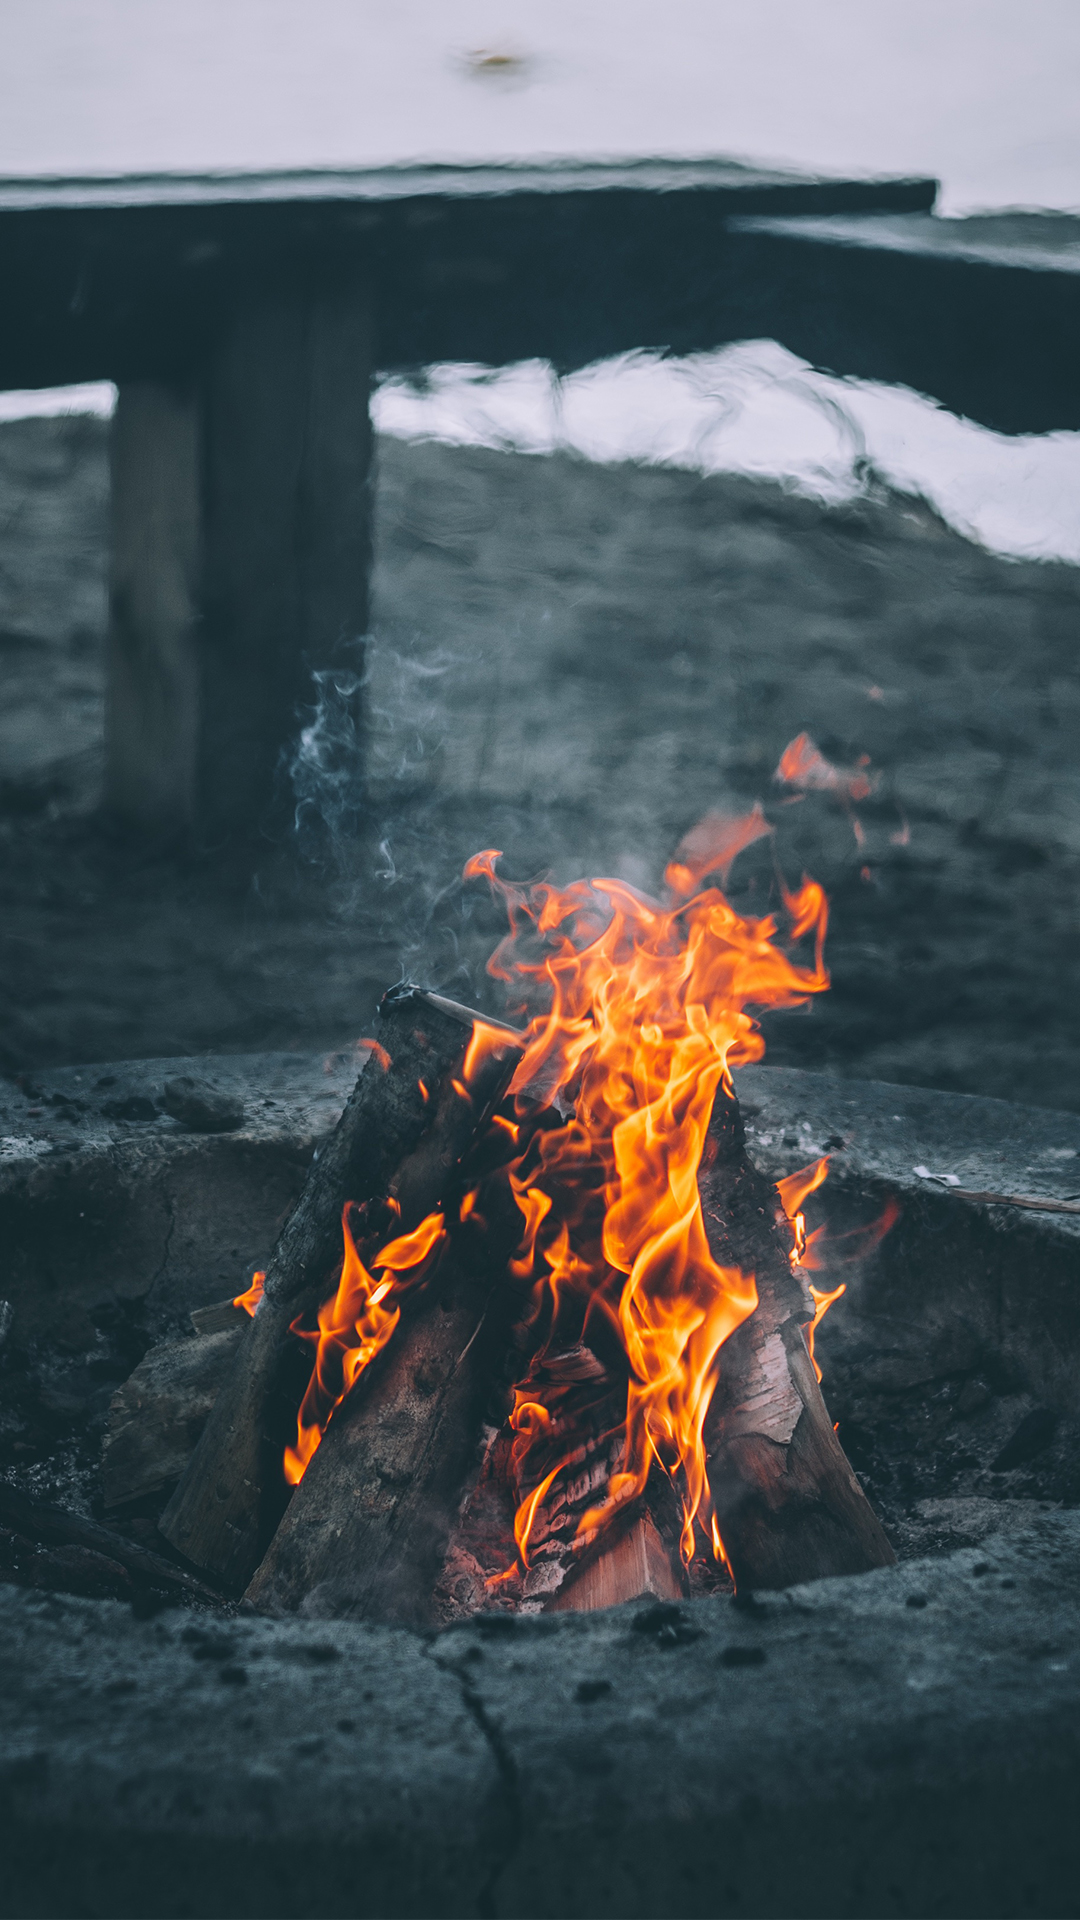 Aesthetic Wallpaper Iphone Campfire Wallpaper For Iphone X 8 7 6 Free Download